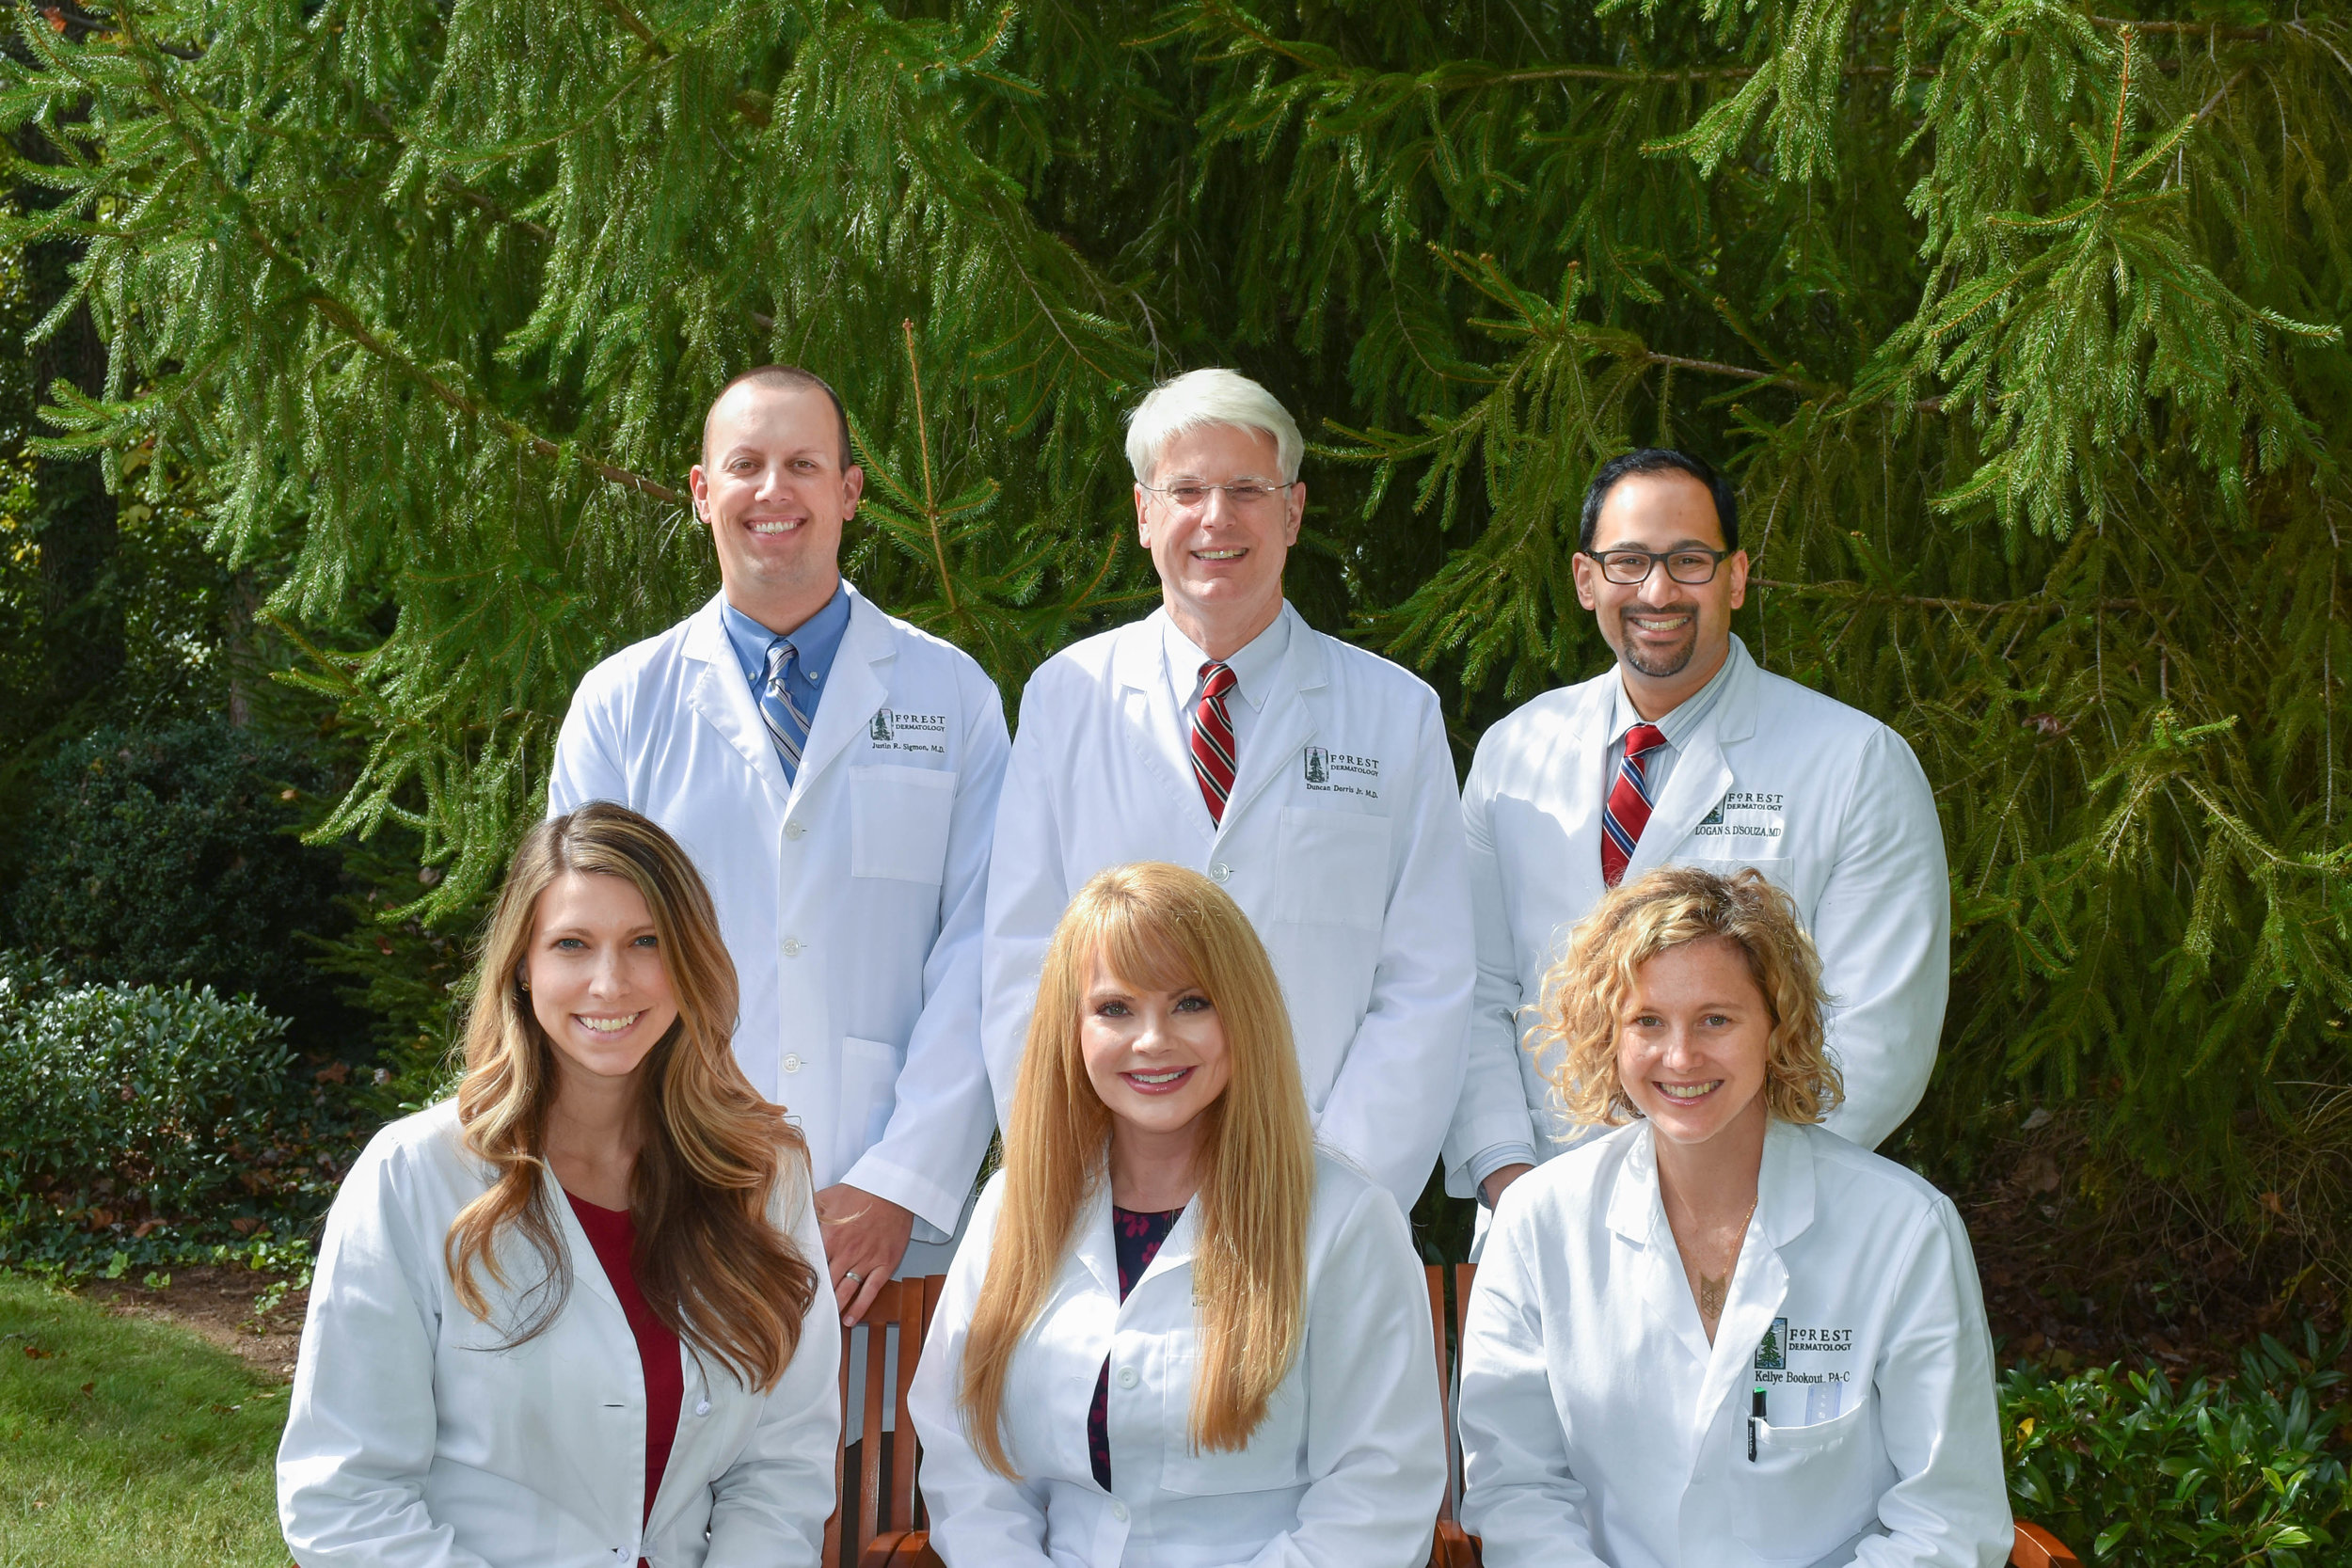 Group Photo of Team at Forest Dermatology